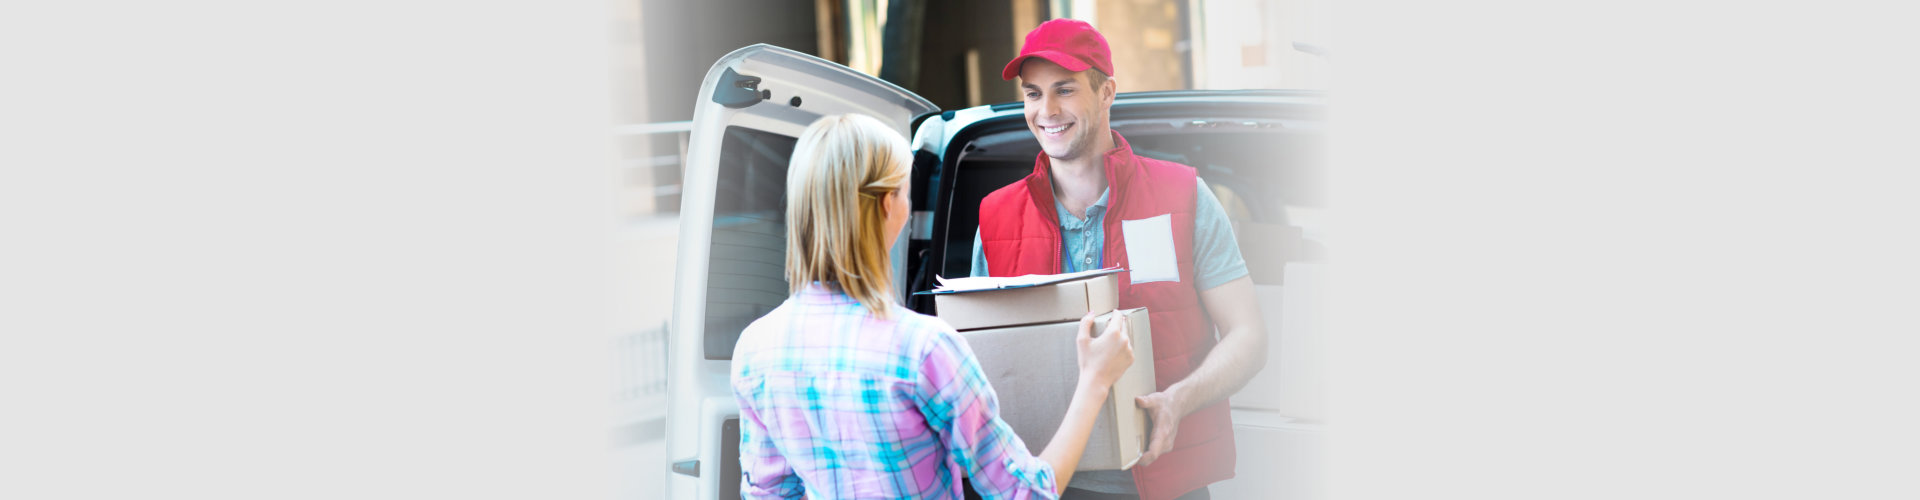 delivery man smiling while giving the package to the customer